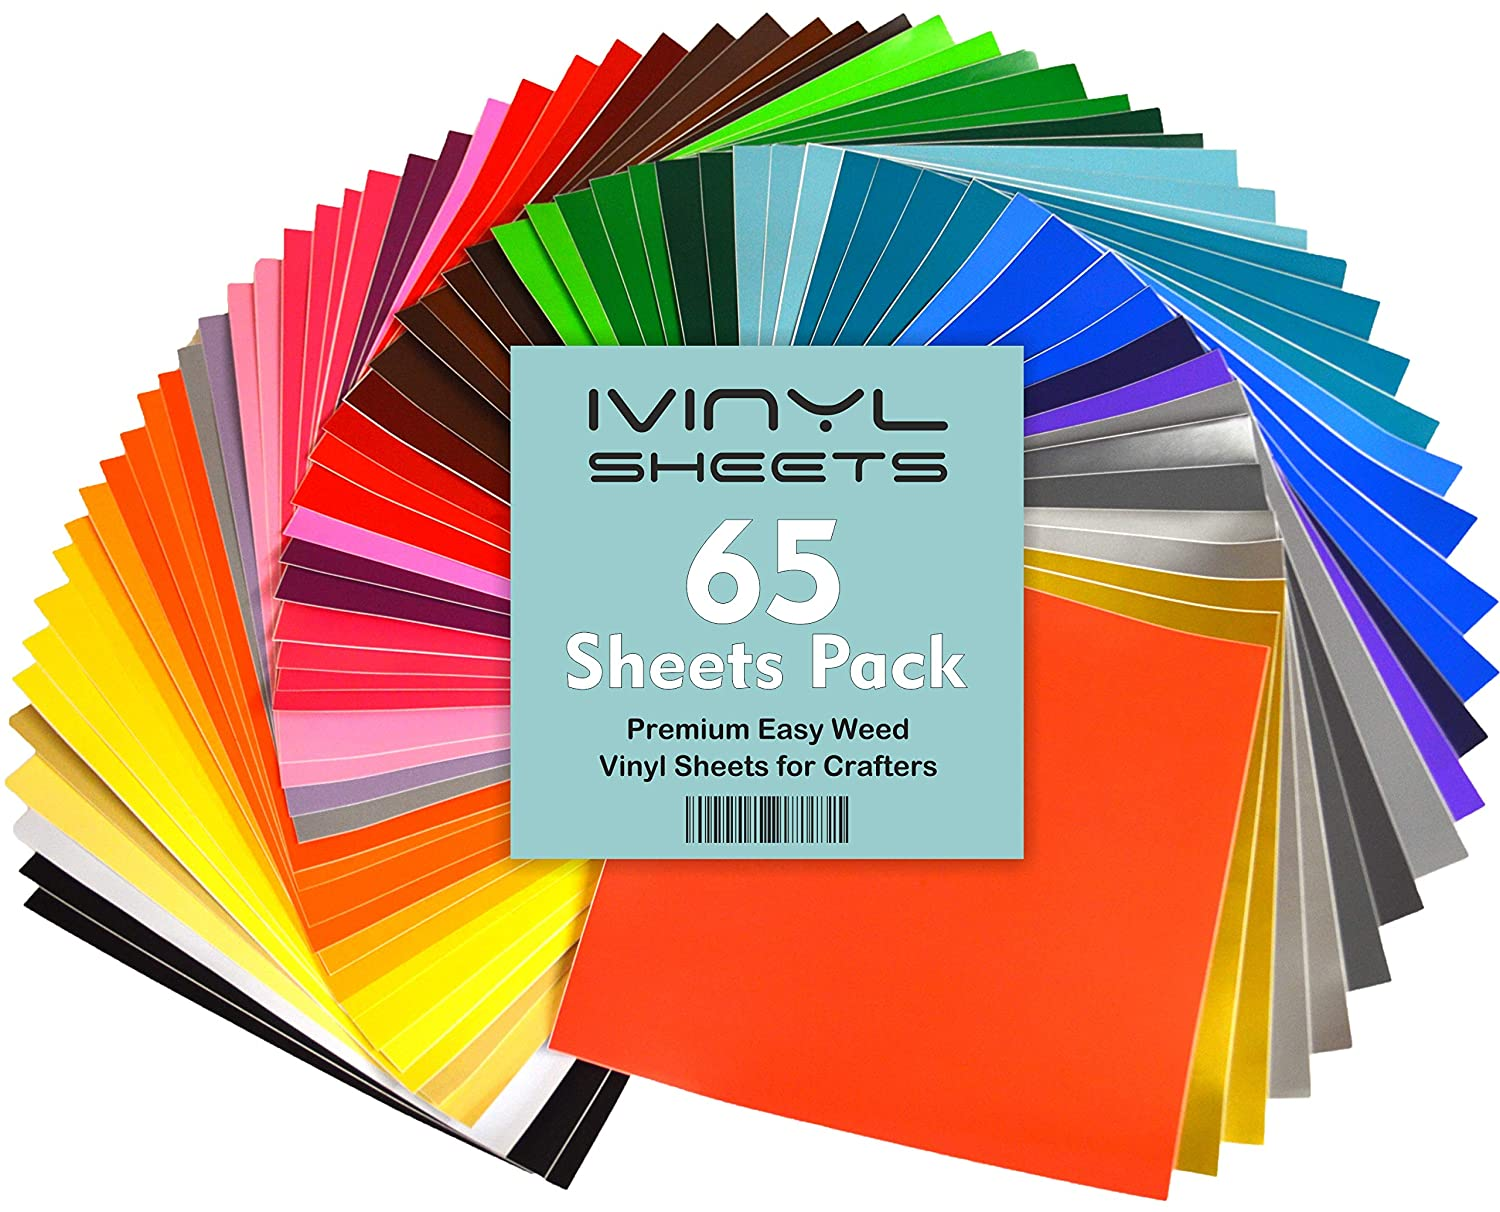 iVinyl - 65 Adhesive Sheets 12 x 12 Premium Permanent Self Adhesive Backed Vinyl Sheets - 65 Glossy & Matt Assorted Colors Sheets for Cricut, Craft Cutters, Silhouette Cameo & Crafting Machines Super Vinyl 4336976768